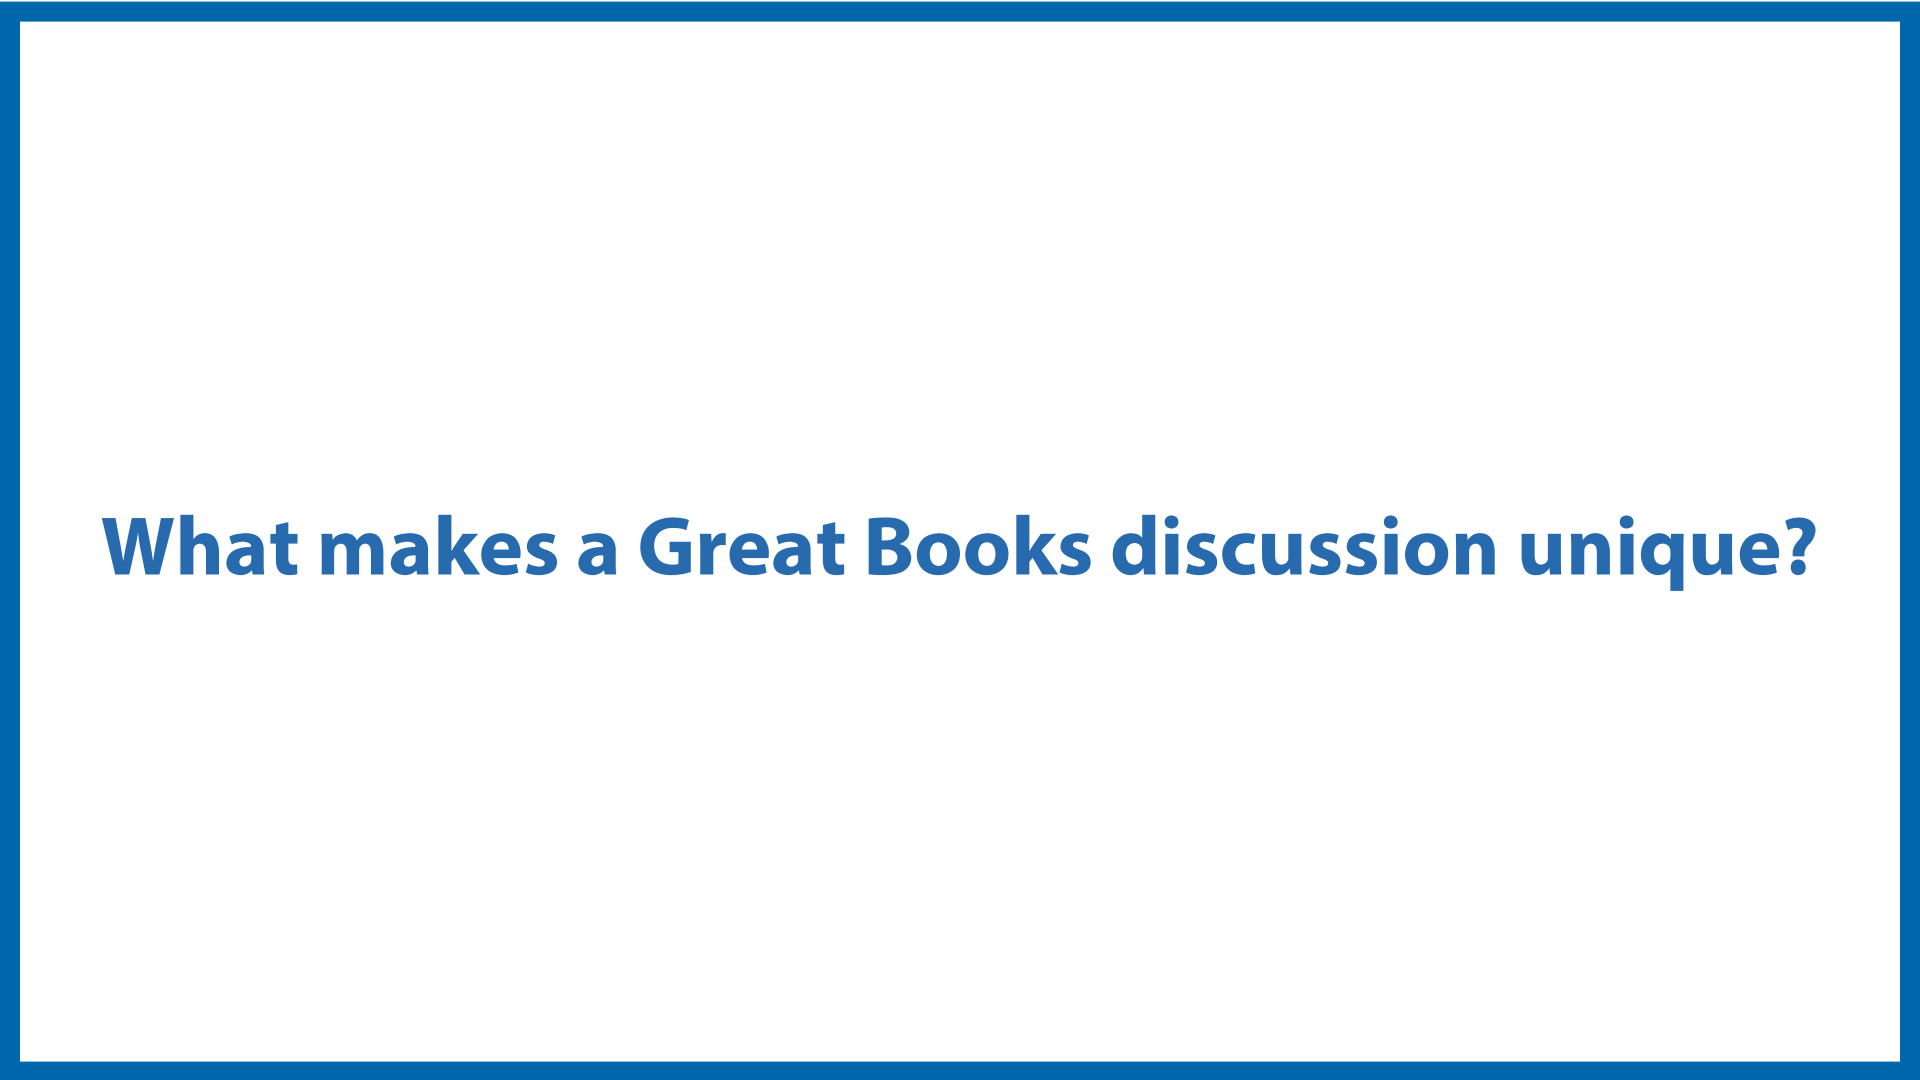 <center>What Makes a <br/>Great Books Discussion Unique?</center>